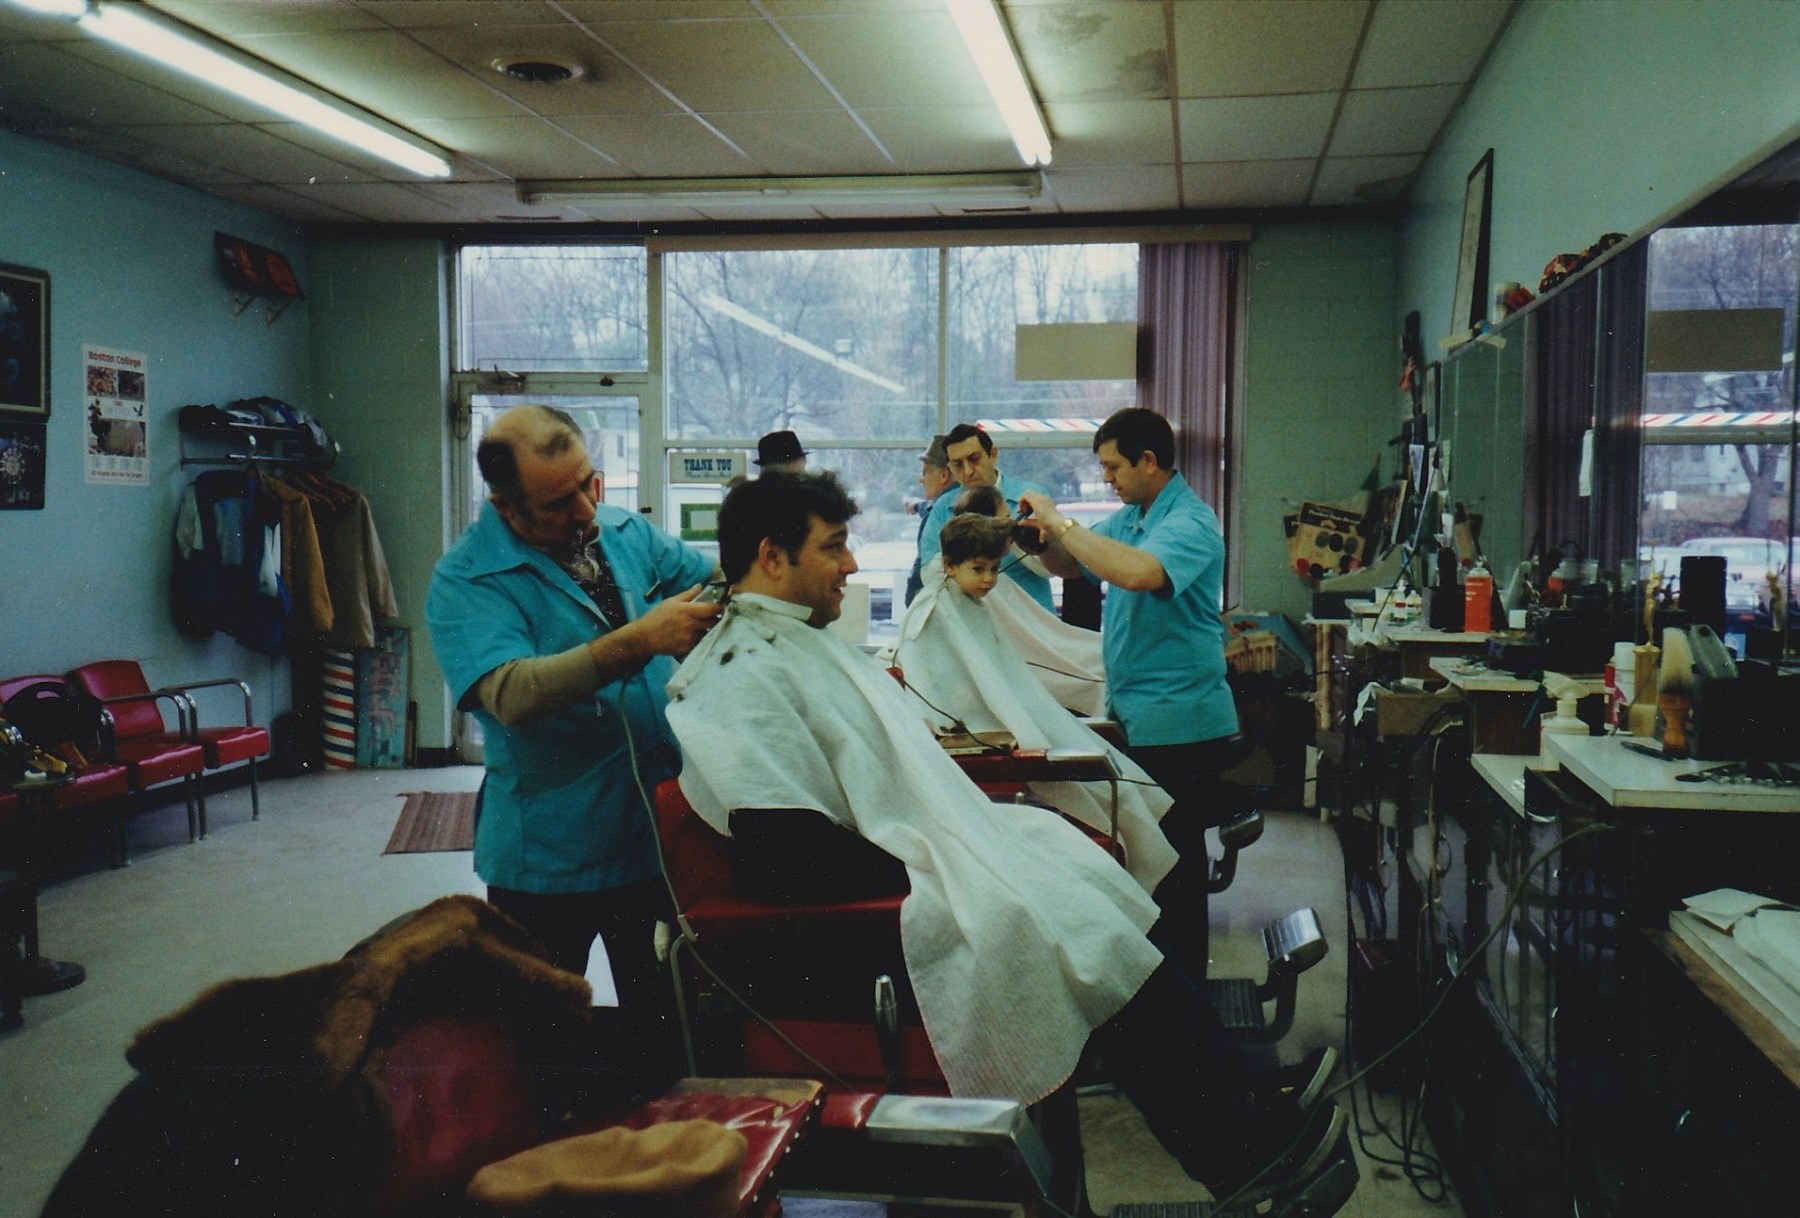 Ray's Barber Shop interior, Burlington MA c. 1989